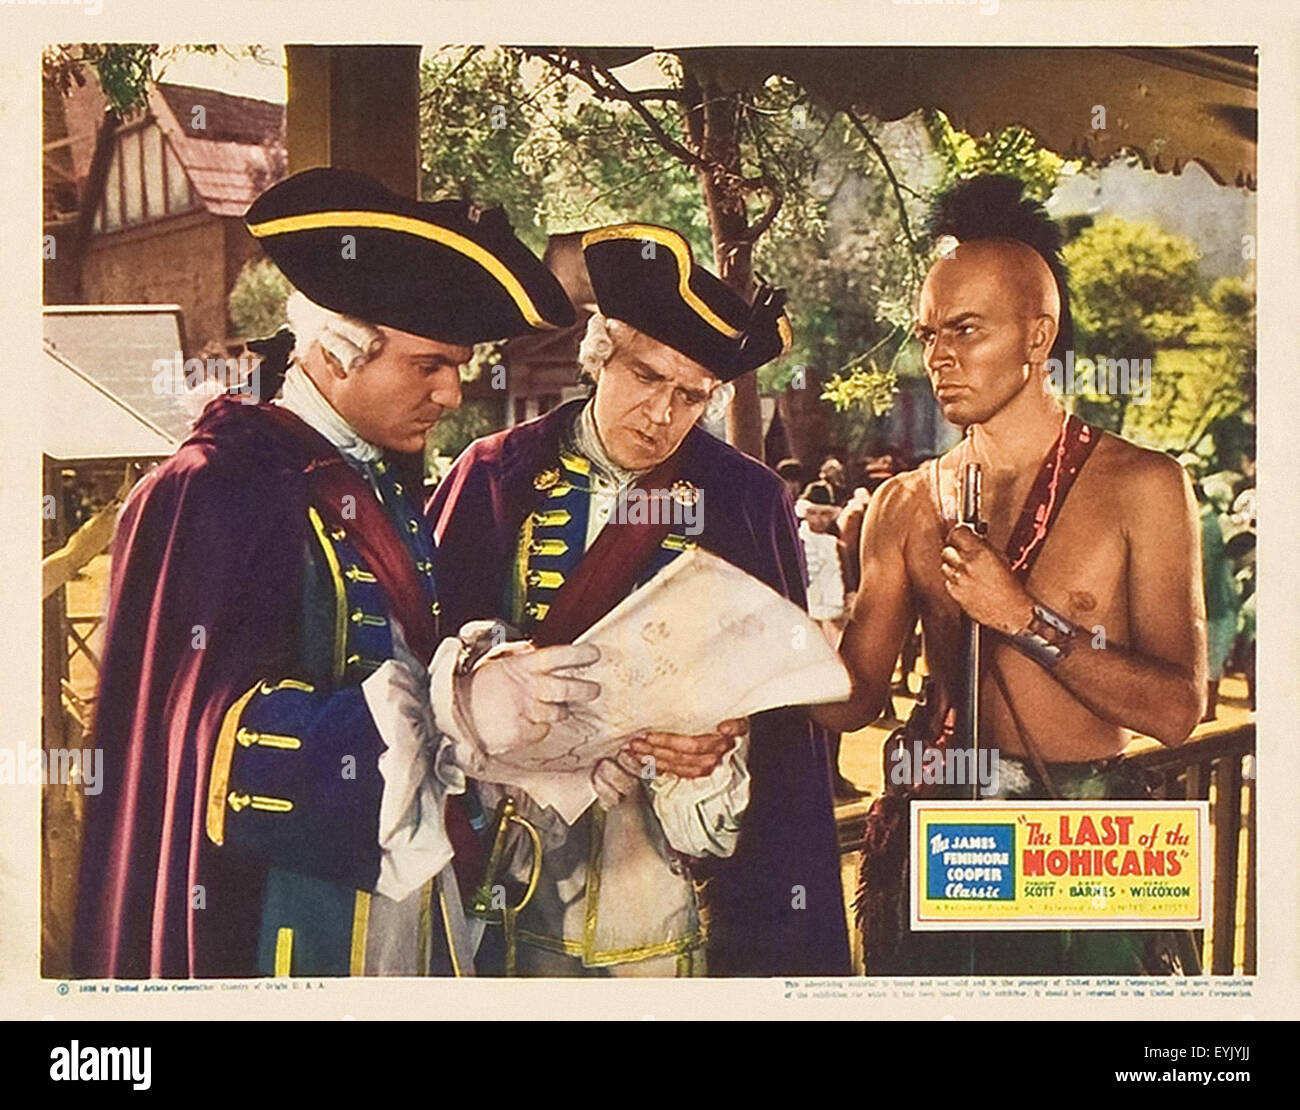 the last of the mohicans 1936 movie poster stock photo